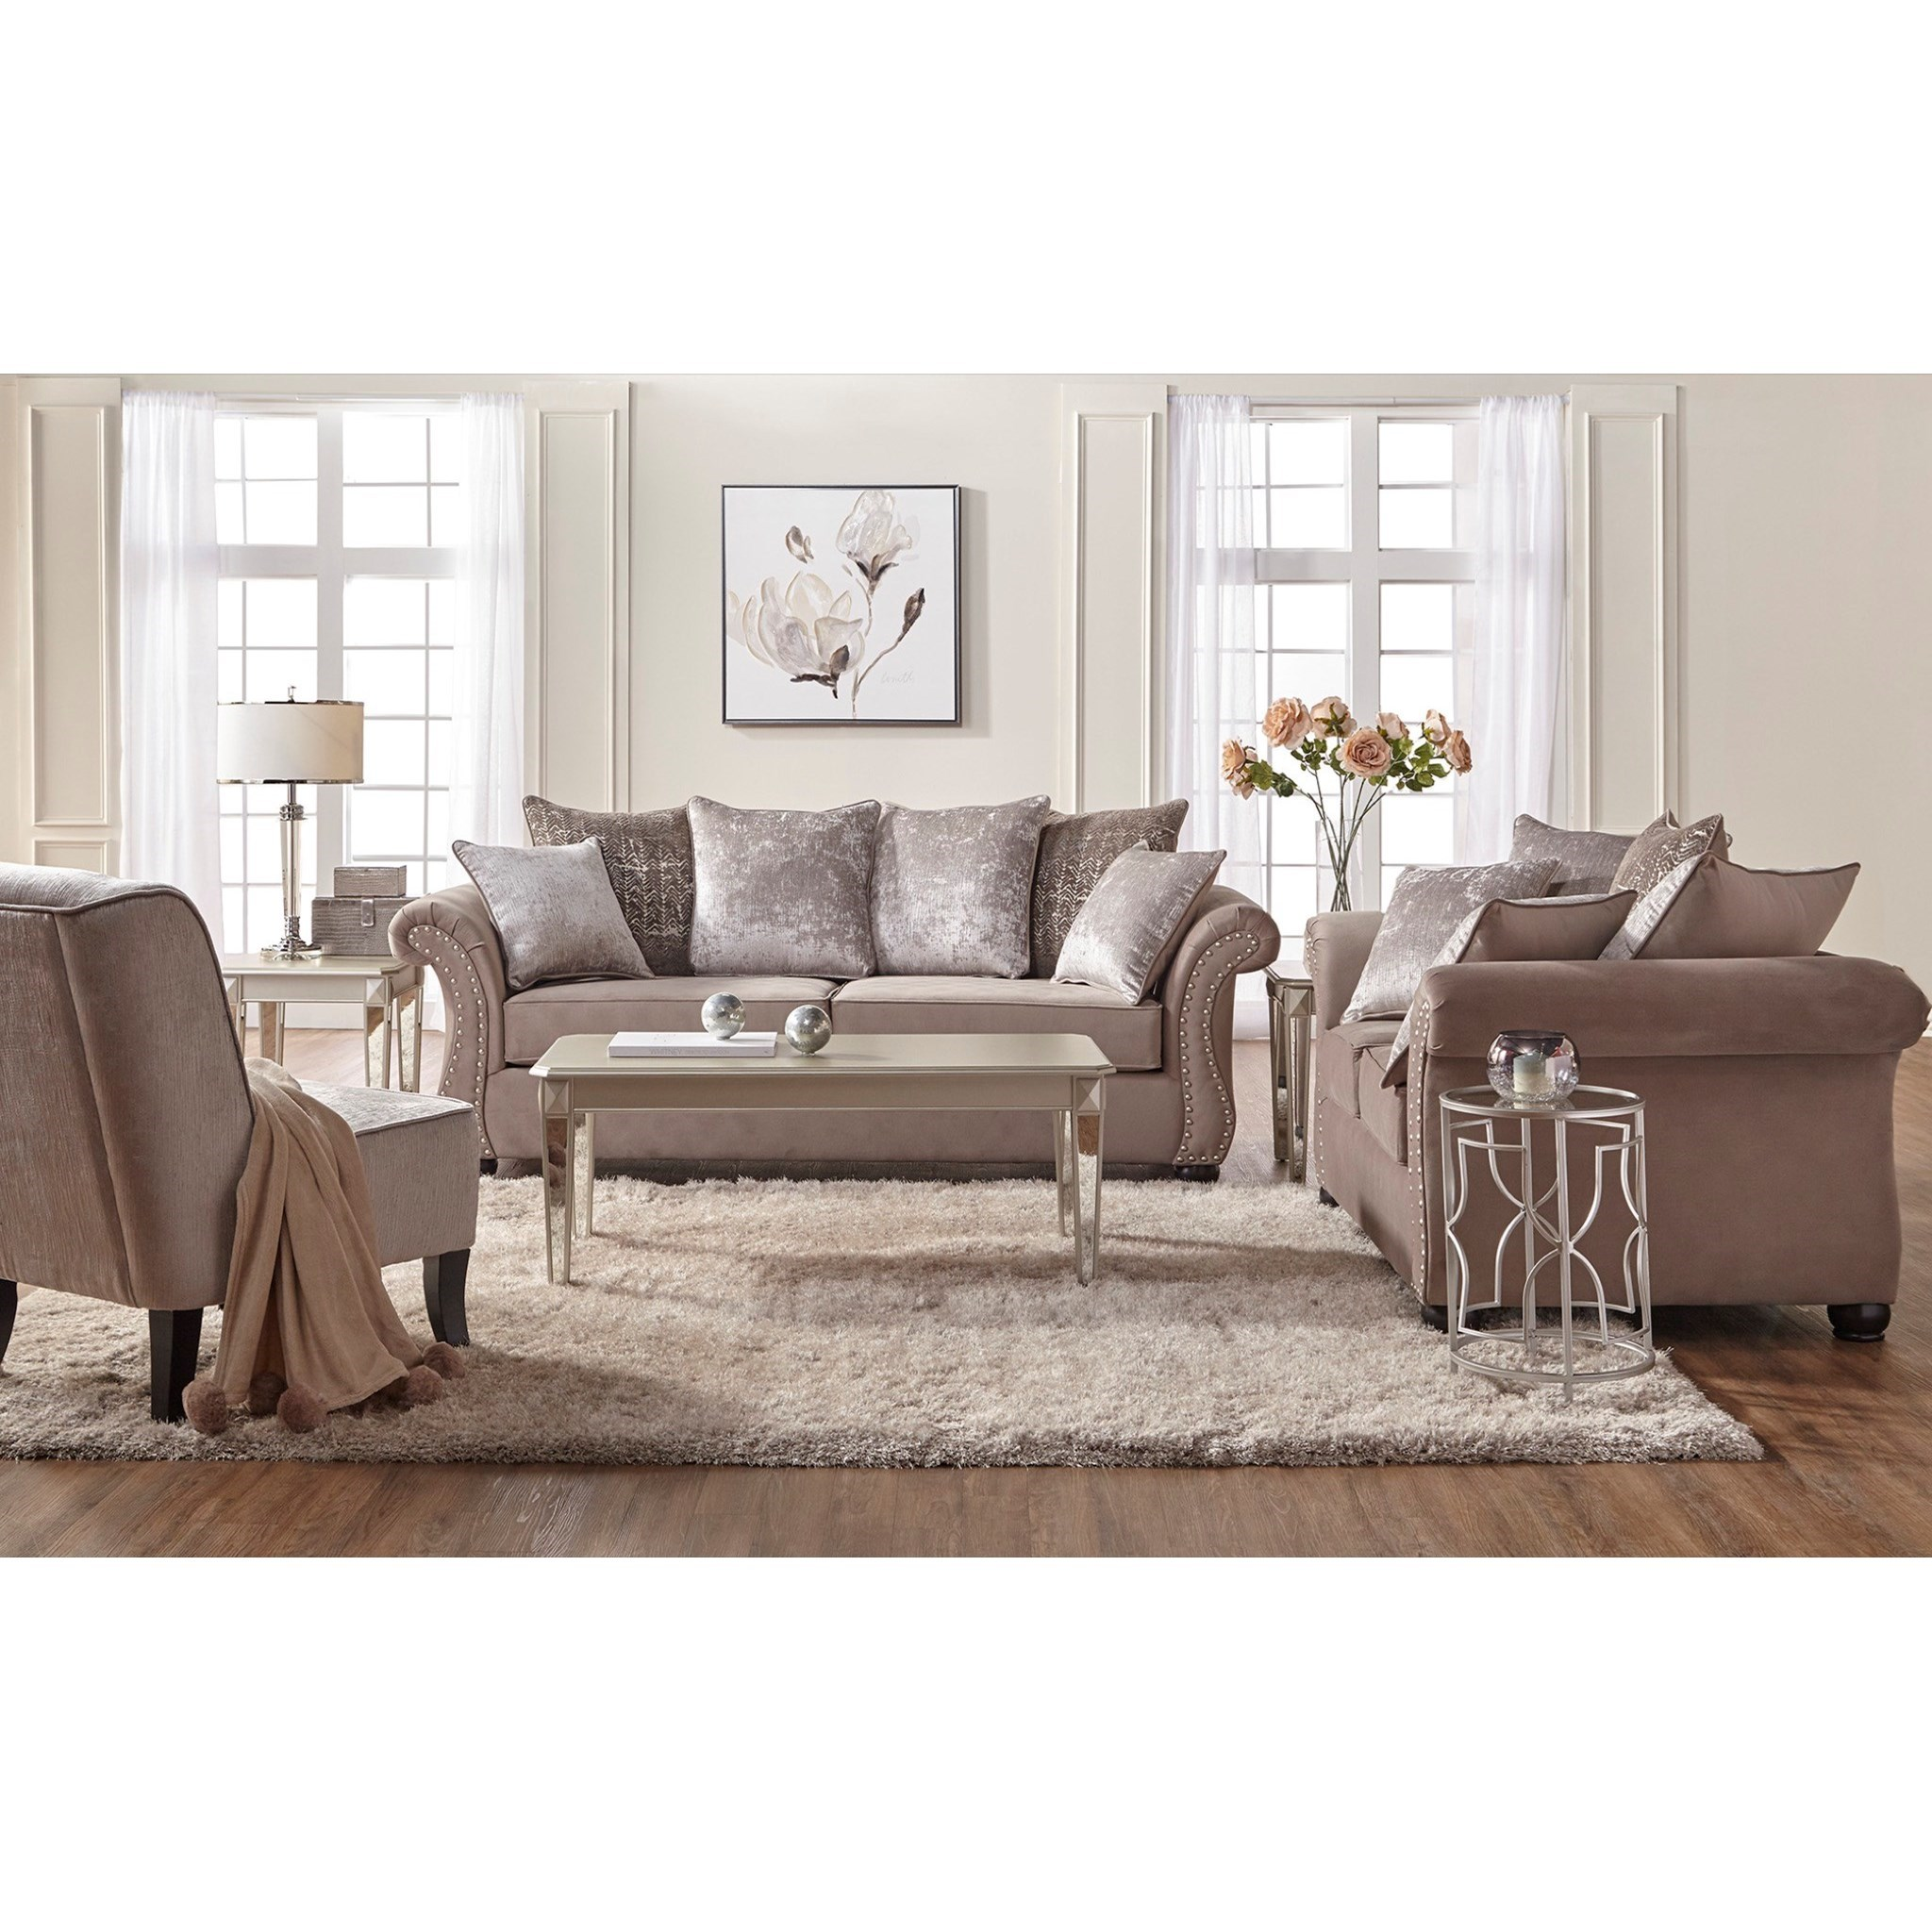 Serta Upholstery by Hughes Furniture 7500 Stationary Living Room Group - Item Number: 7500 Living Room Group 1